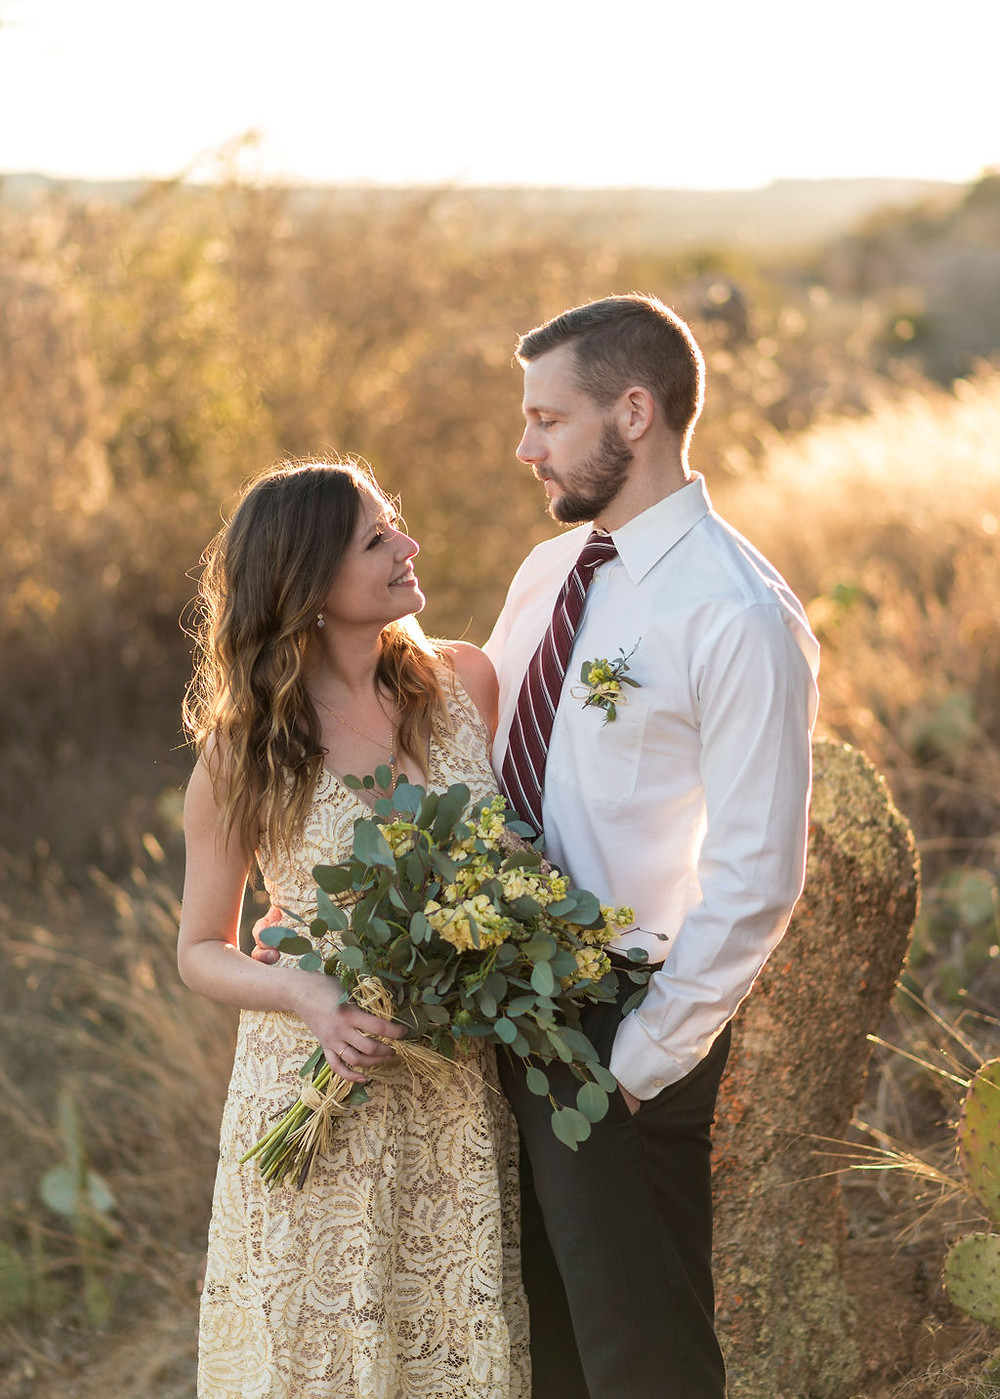 bride and groom look at each other and smile. Bride is holding bouquet with one hand. Their arms are wrapped around each other's backs. They are standing on enchanted rock for their elopement with the texas hill country in the background during golden hour